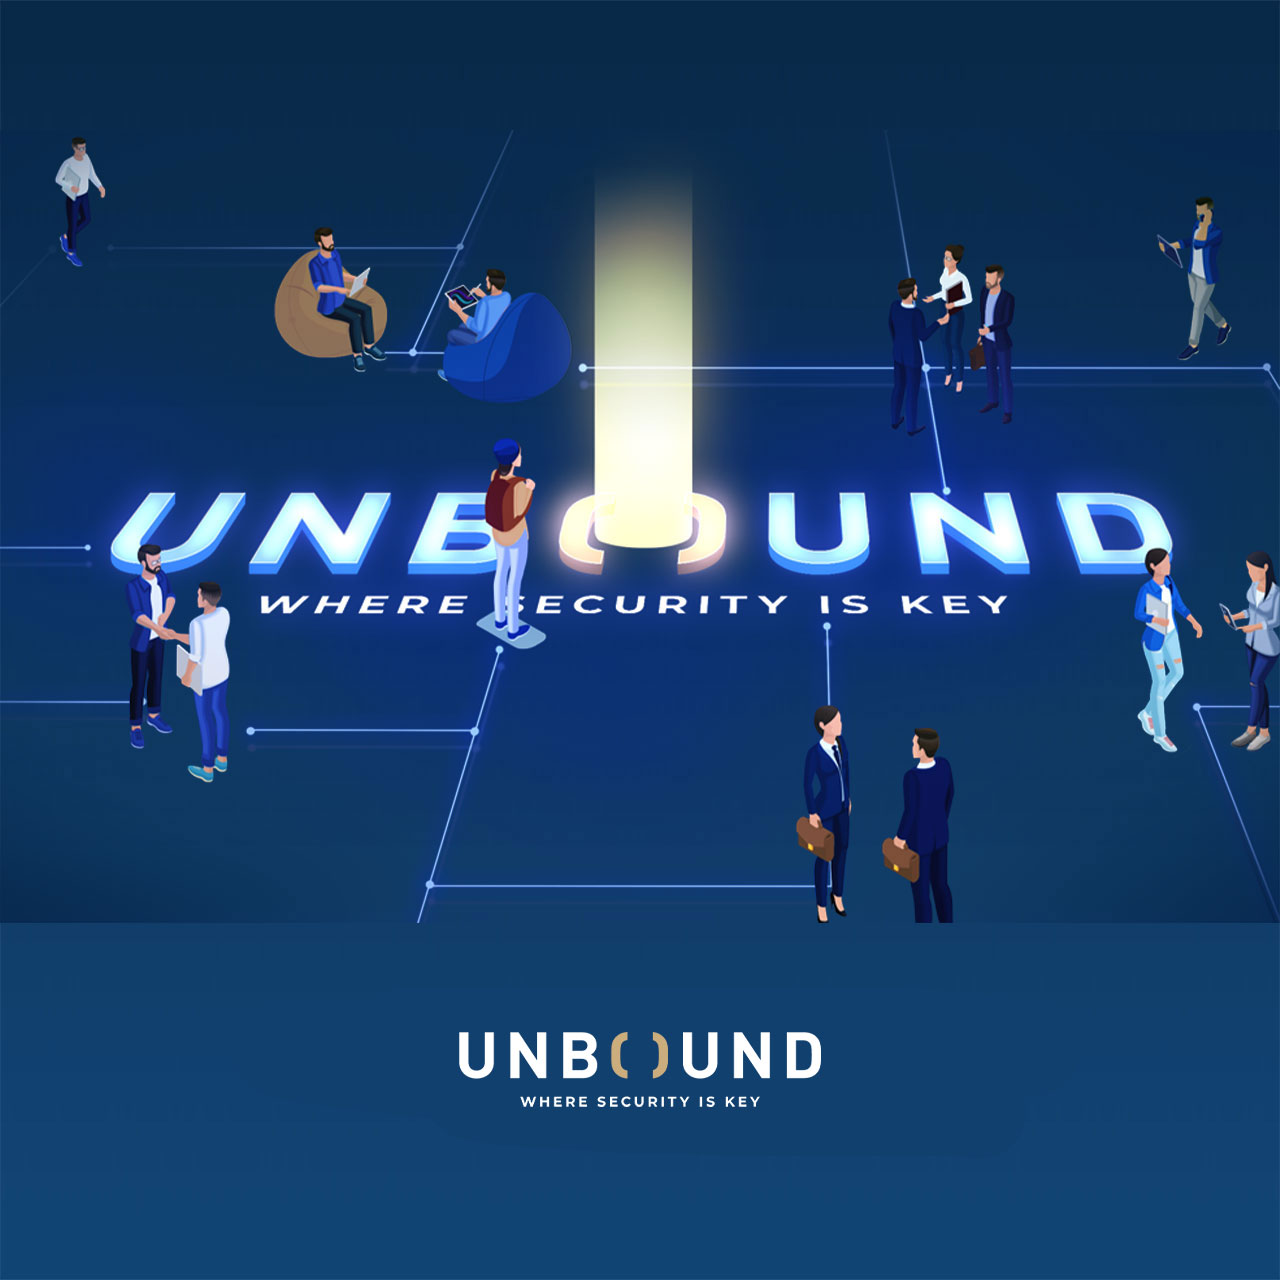 unboundtech-featured-image2